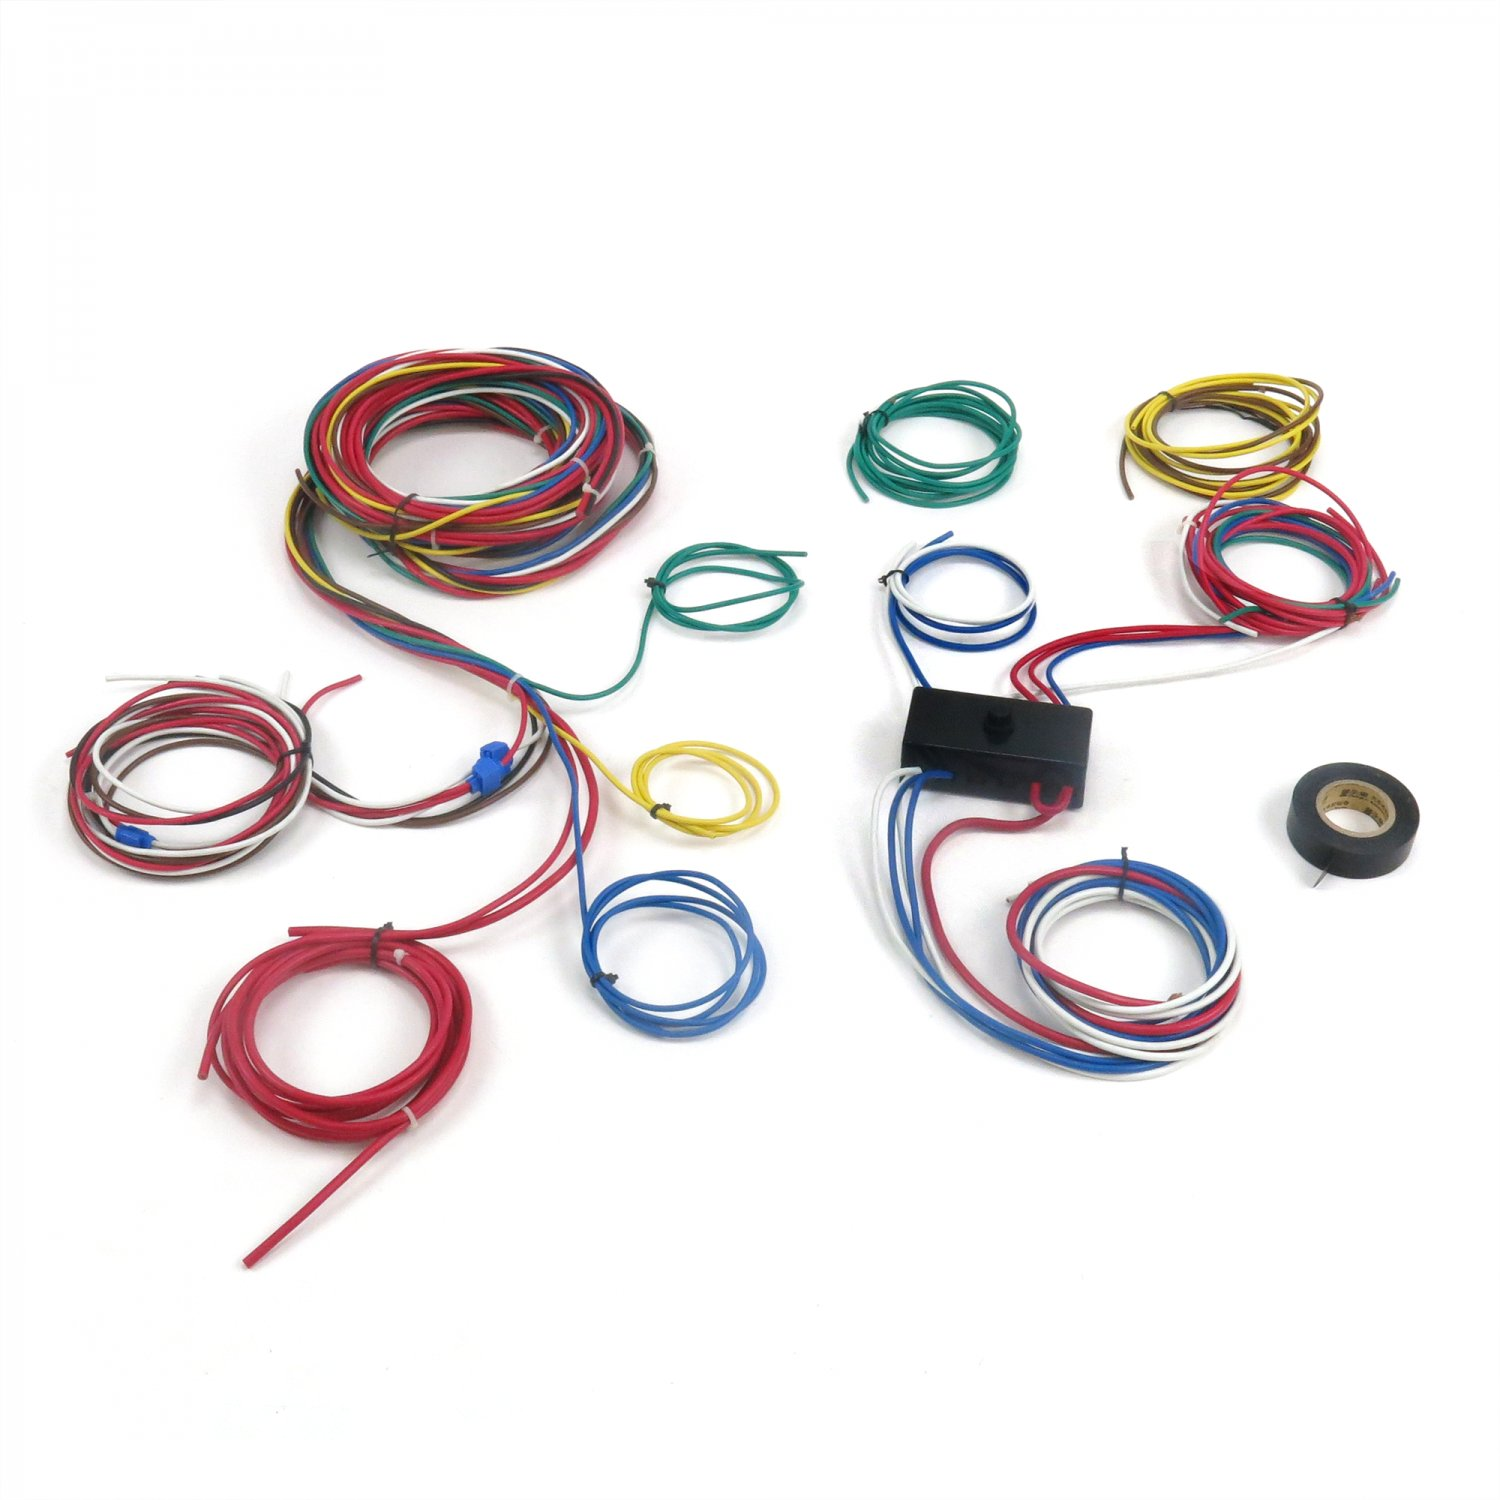 dune buggy universal wiring harness w fuse box fits empi 9466 vw dune buggy universal wiring harness w fuse box fits empi 9466 vw rail buggy